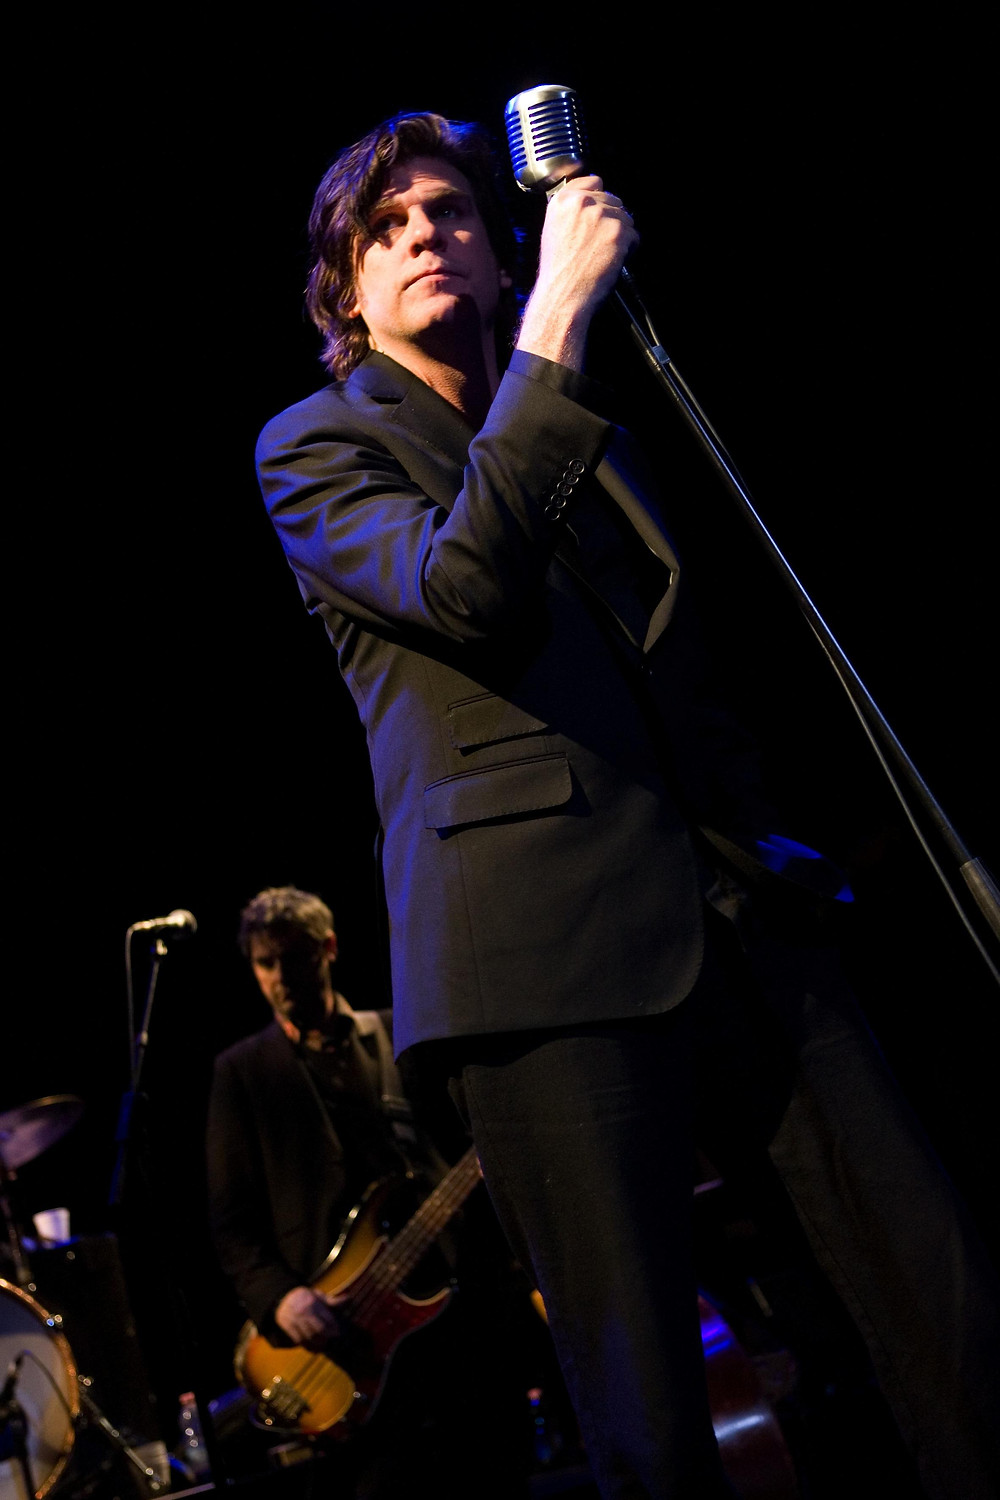 Tex Perkins 10th Anniversay of the Man in Black